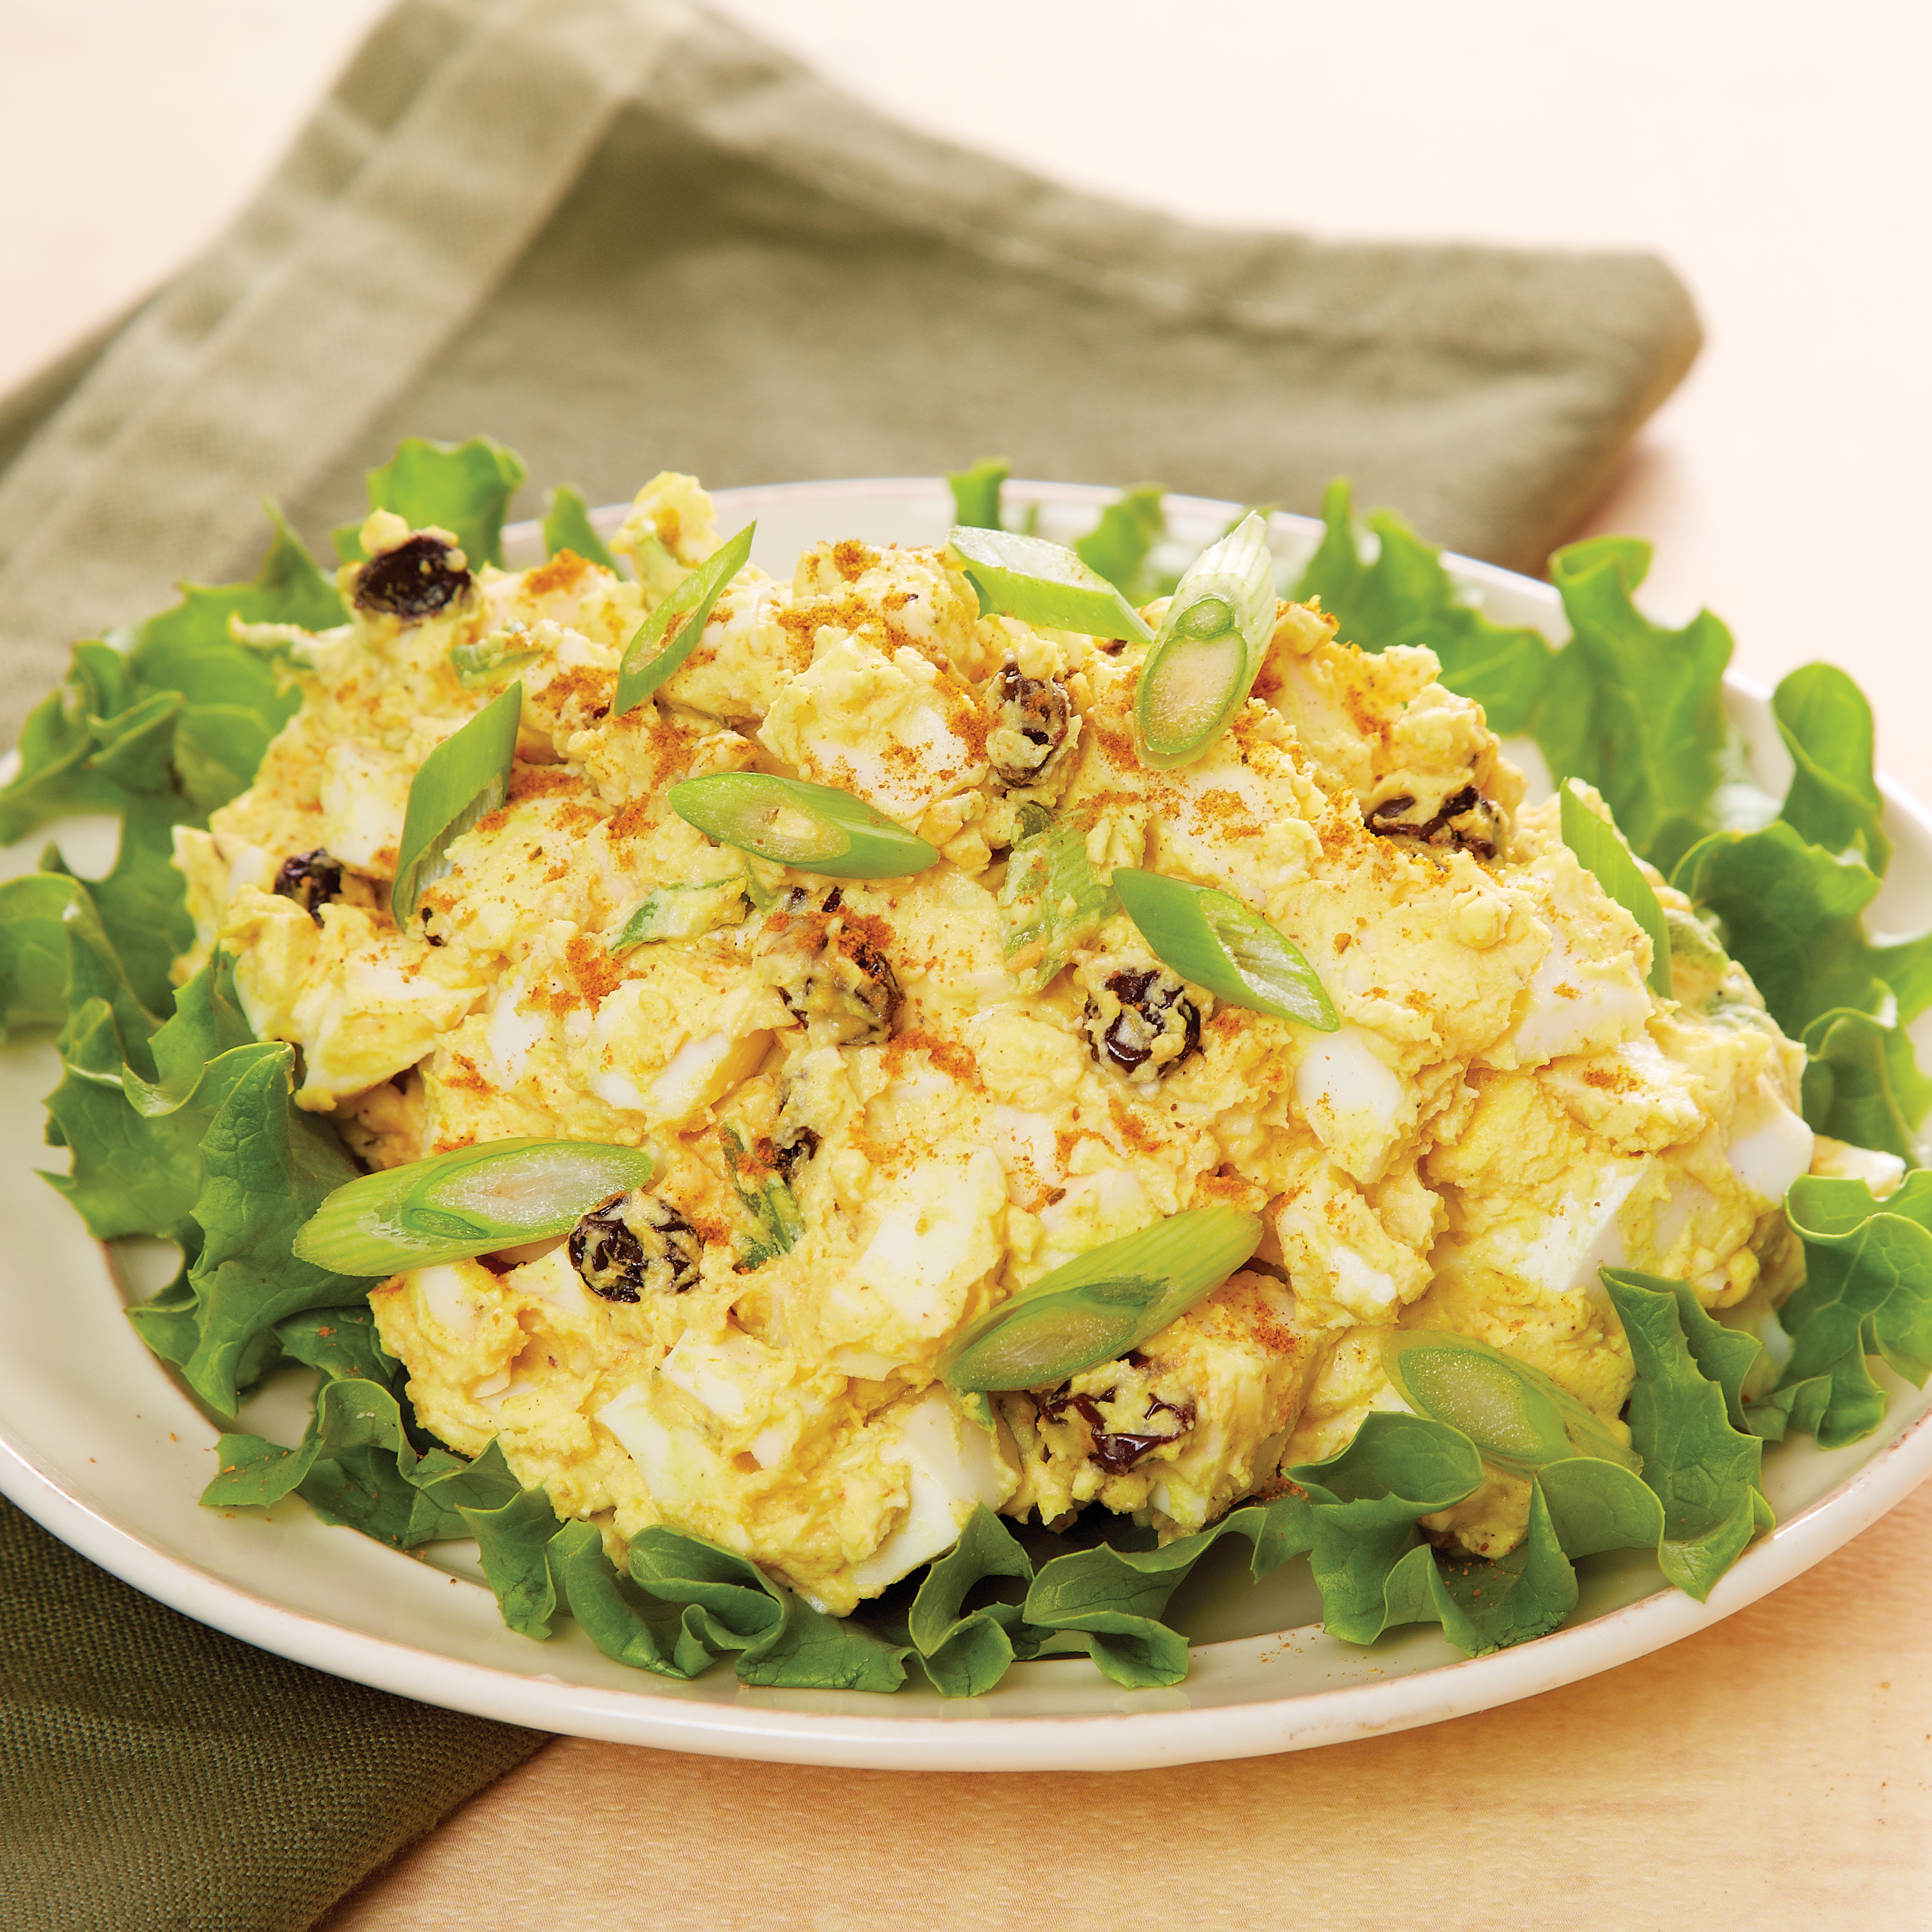 Curried Egg Salad with Currants | Recipes & Meals - Stop&Shop